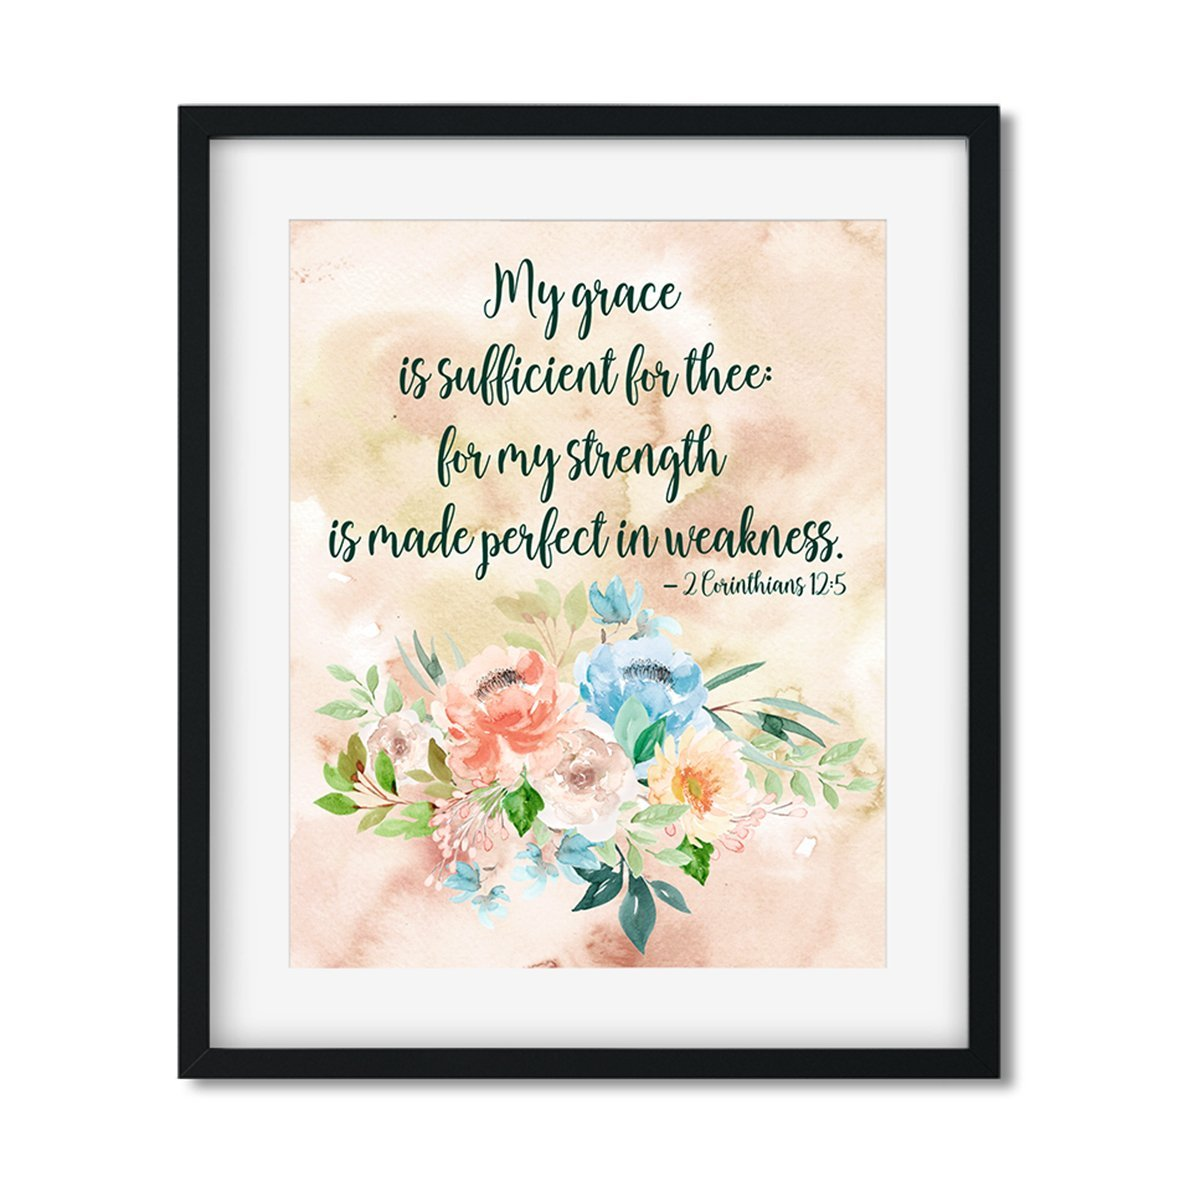 My Grace is sufficient for thee - Art Print - Netties Expressions